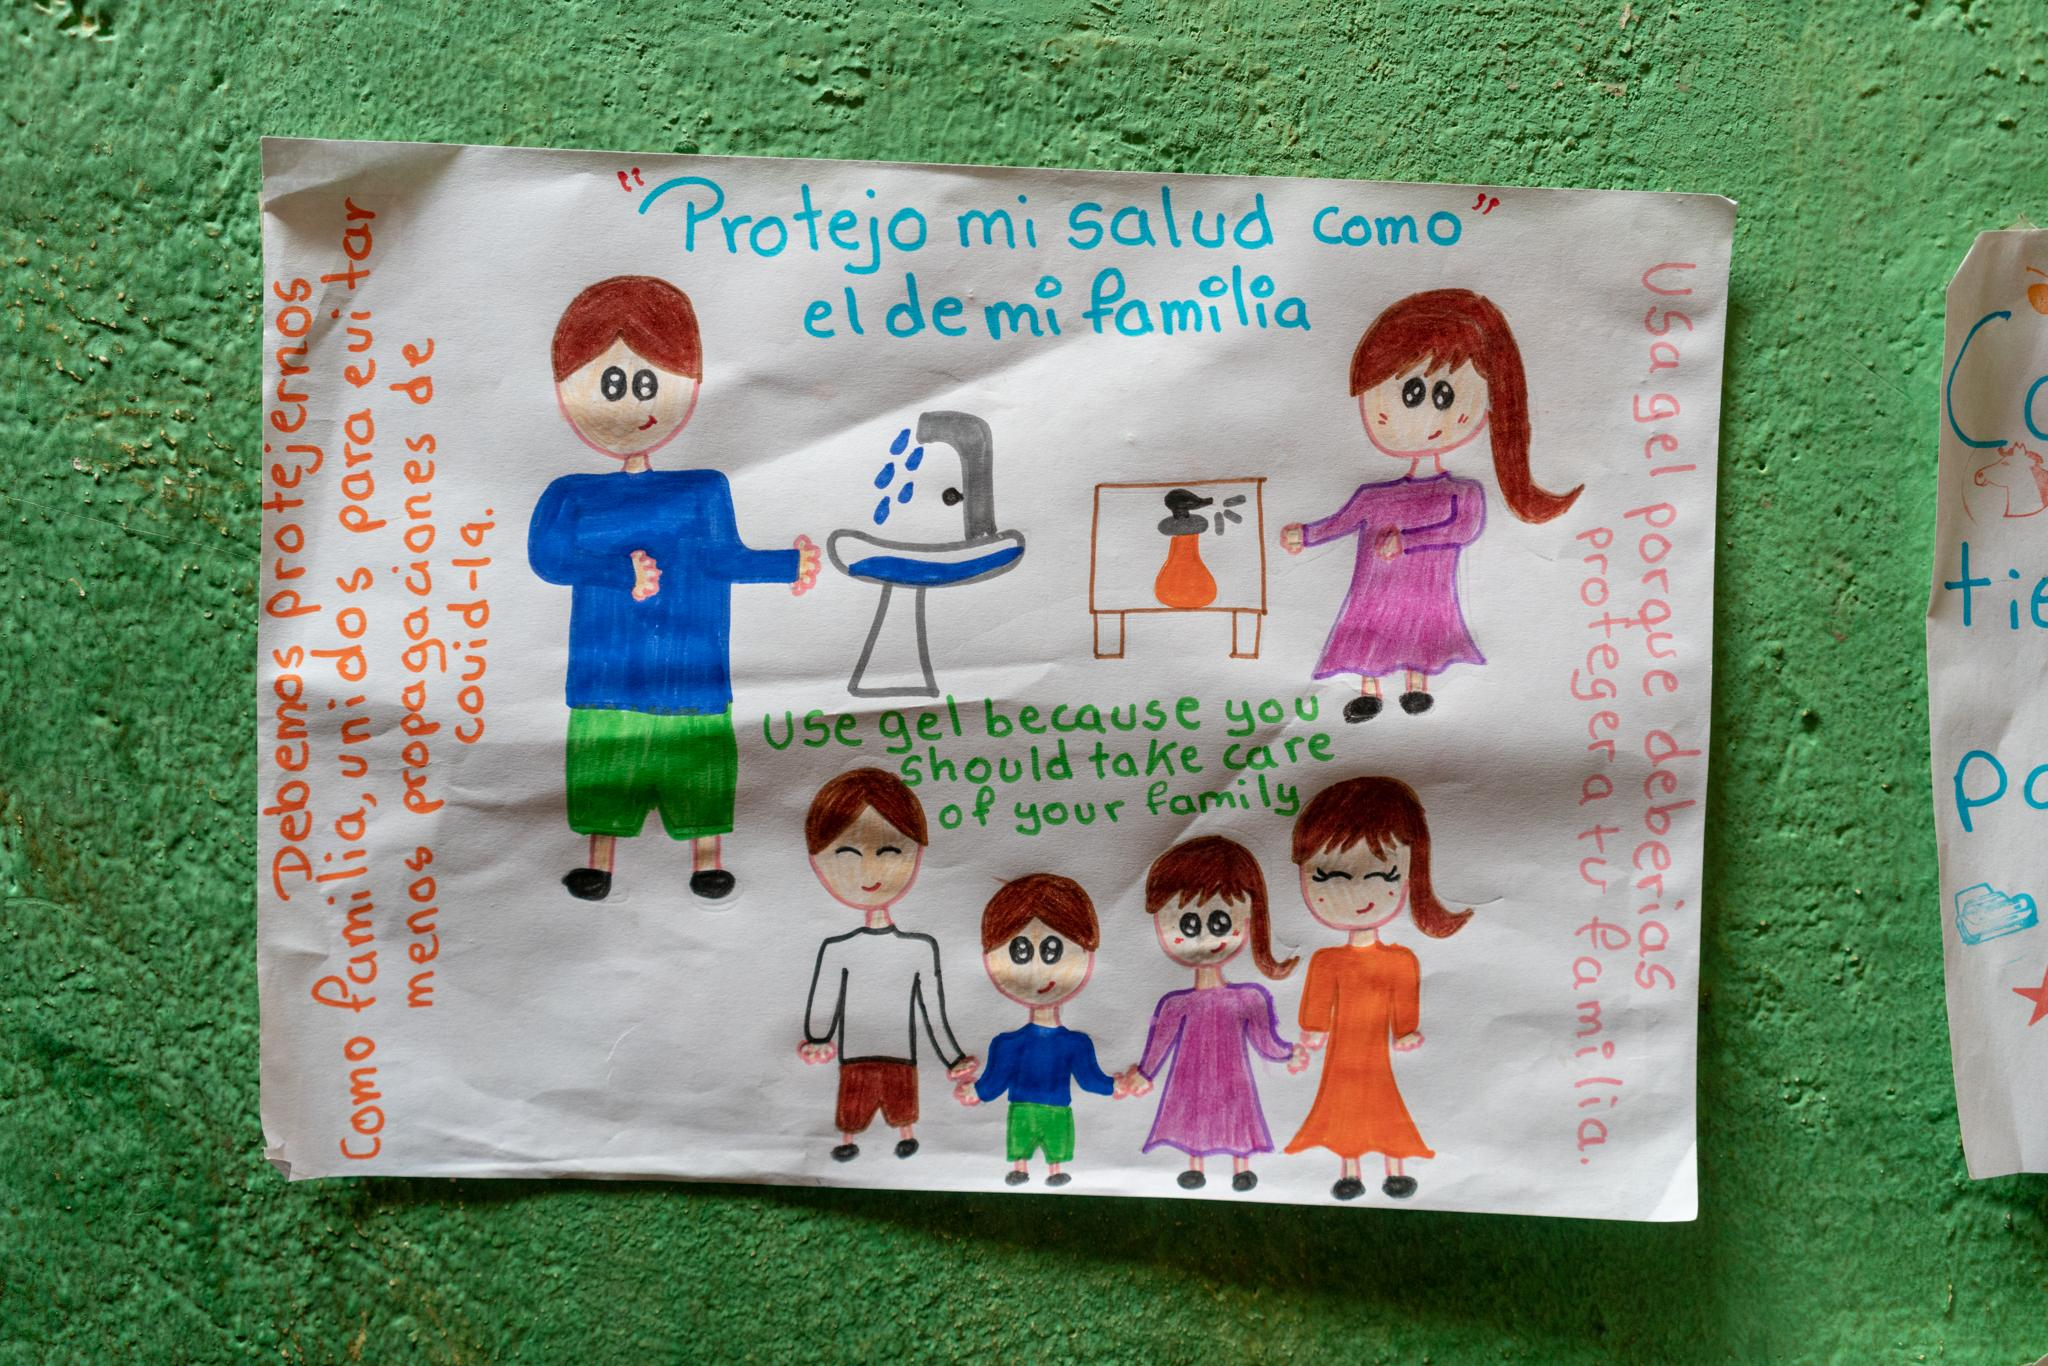 Drawings with messages about how we should act during the Covid19 pandemic. Jasid Taquiri Aguayo (7) and Suri Laina Aguayo (10) are elementary school students of the Yachay Wasi Intercultural Bilingual Community School. Located south of Quito in Ecuador. They live with her sister Arelí (14), her mother Dina Taco (39) and her father Juan Andrés Aguayo (34). They live in a big house, their grandparents are their neighbors, and they have a big garden full of plants and some trees. Her parents say that at the beginning of the quarantine it was more fun for the children, but nowadays they miss going to school and sharing with their classmates. Dina, the mother, studies Infant Education at a distance, this has given her tools to closely accompany her children's studies during the confinement. She has created routines for children to make better use of time; at 8:30 they do exercises and dance in the patio, until 11:30 they do their homework, then they play and they also collaborate in certain household responsibilities. They are a family with limited financial resources, the Covid19 has left the two parents without work, however, they can lean on their grandparents. They are a family with a broad vision of social work. Photographer: Ana Maria Buitron. Quito, Ecuador. Dibujos con mensajes sobre cómo debemos actuar durante la pandemia del Covid19. Jasid Taquiri Aguayo (7) y Suri Laina Aguayo (10) son estudiantes de primaria de la Escuela Comunitaria Intercultural Bilingüe Yachay Wasi. Ubicada al sur de Quito en Ecuador. Viven con su hermana Arelí (14), su madre Dina Taco (39) y su padre Juan Andrés Aguayo (34). Viven en una casa grande, sus abuelos son sus vecinos y tienen un jardín grande lleno de planta y algunos árboles. Sus padres cuentan que al inicio de la cuarentena era más divertido para los niños , pero actualmente extrañan ir a la escuela y compartir con sus compañeros. Dina, la madre, estudia a distancia Educación Infantil, esto le ha dado he